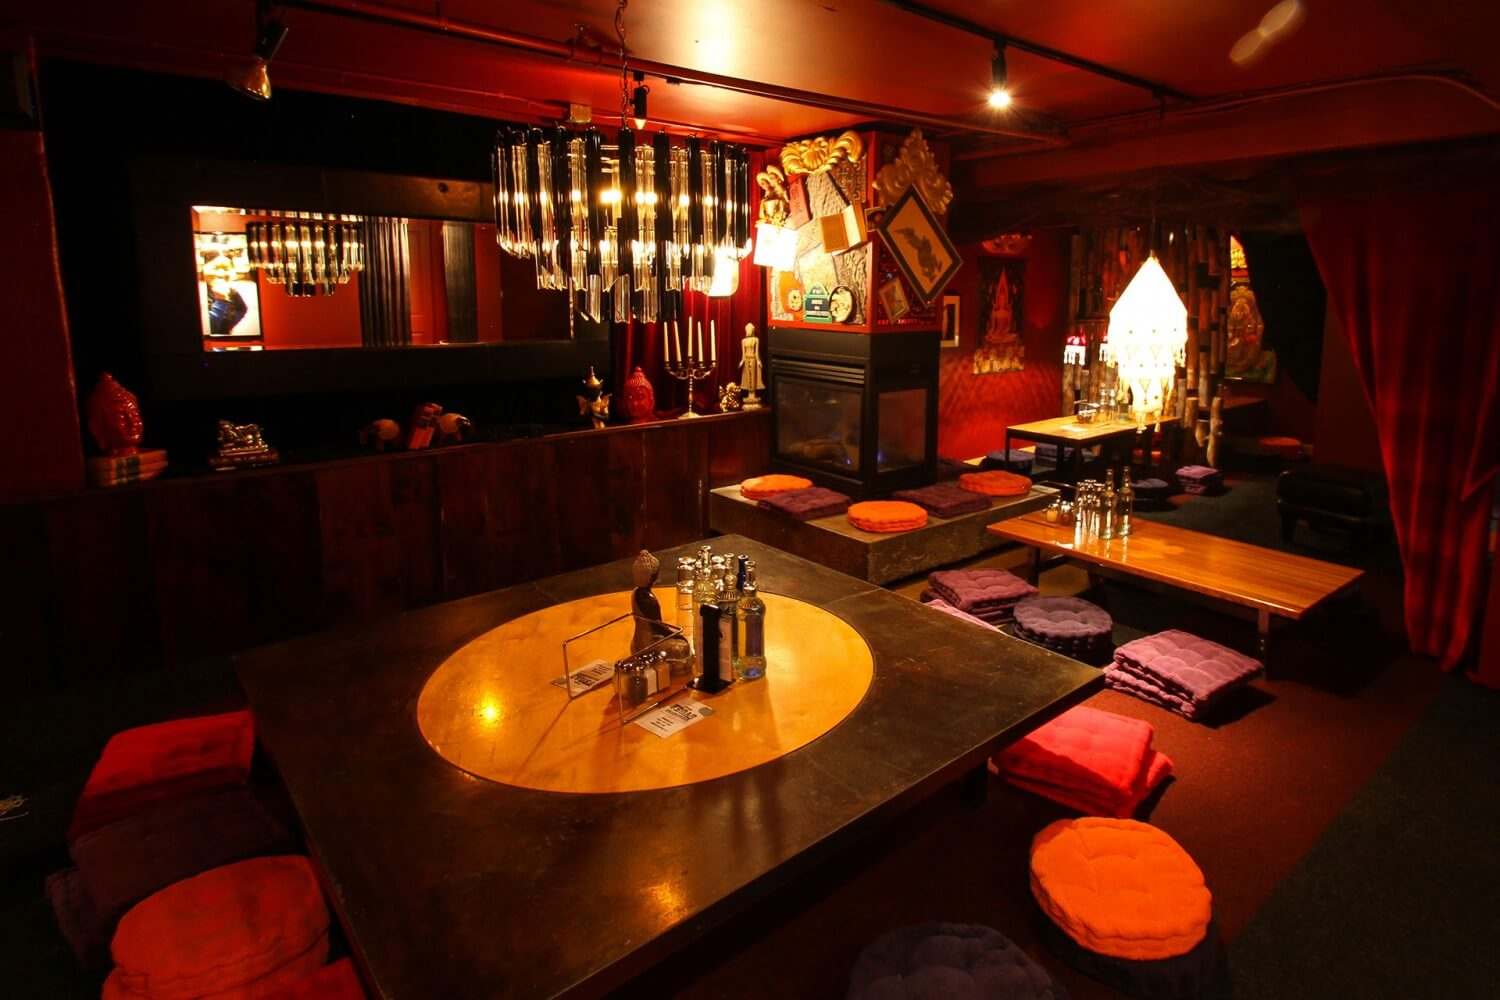 Secret Stash Pizza - Crested Butte, CO - The Red Room Party Venue